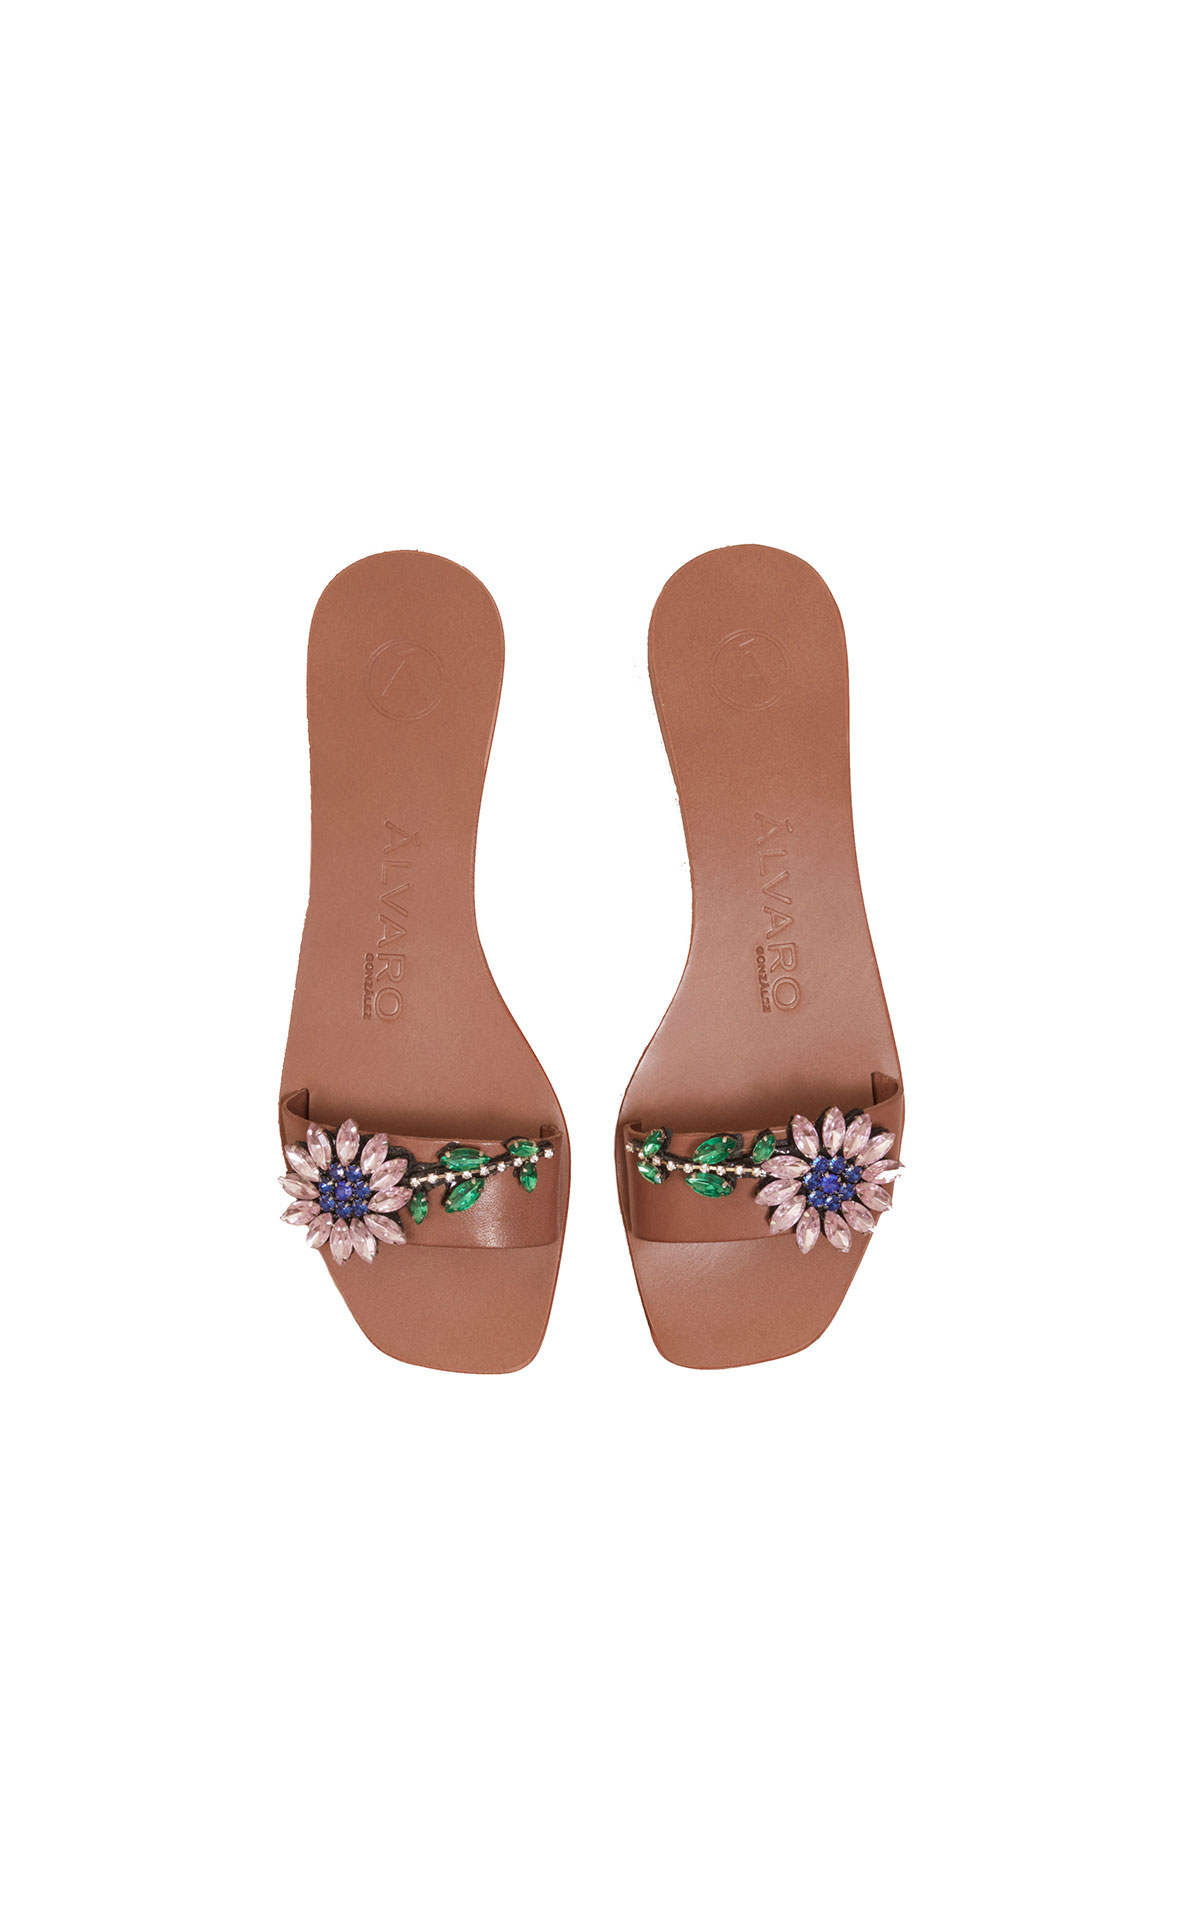 Barefoot Chic Alvaro Abbi flower tobacco slide from Bicester Village